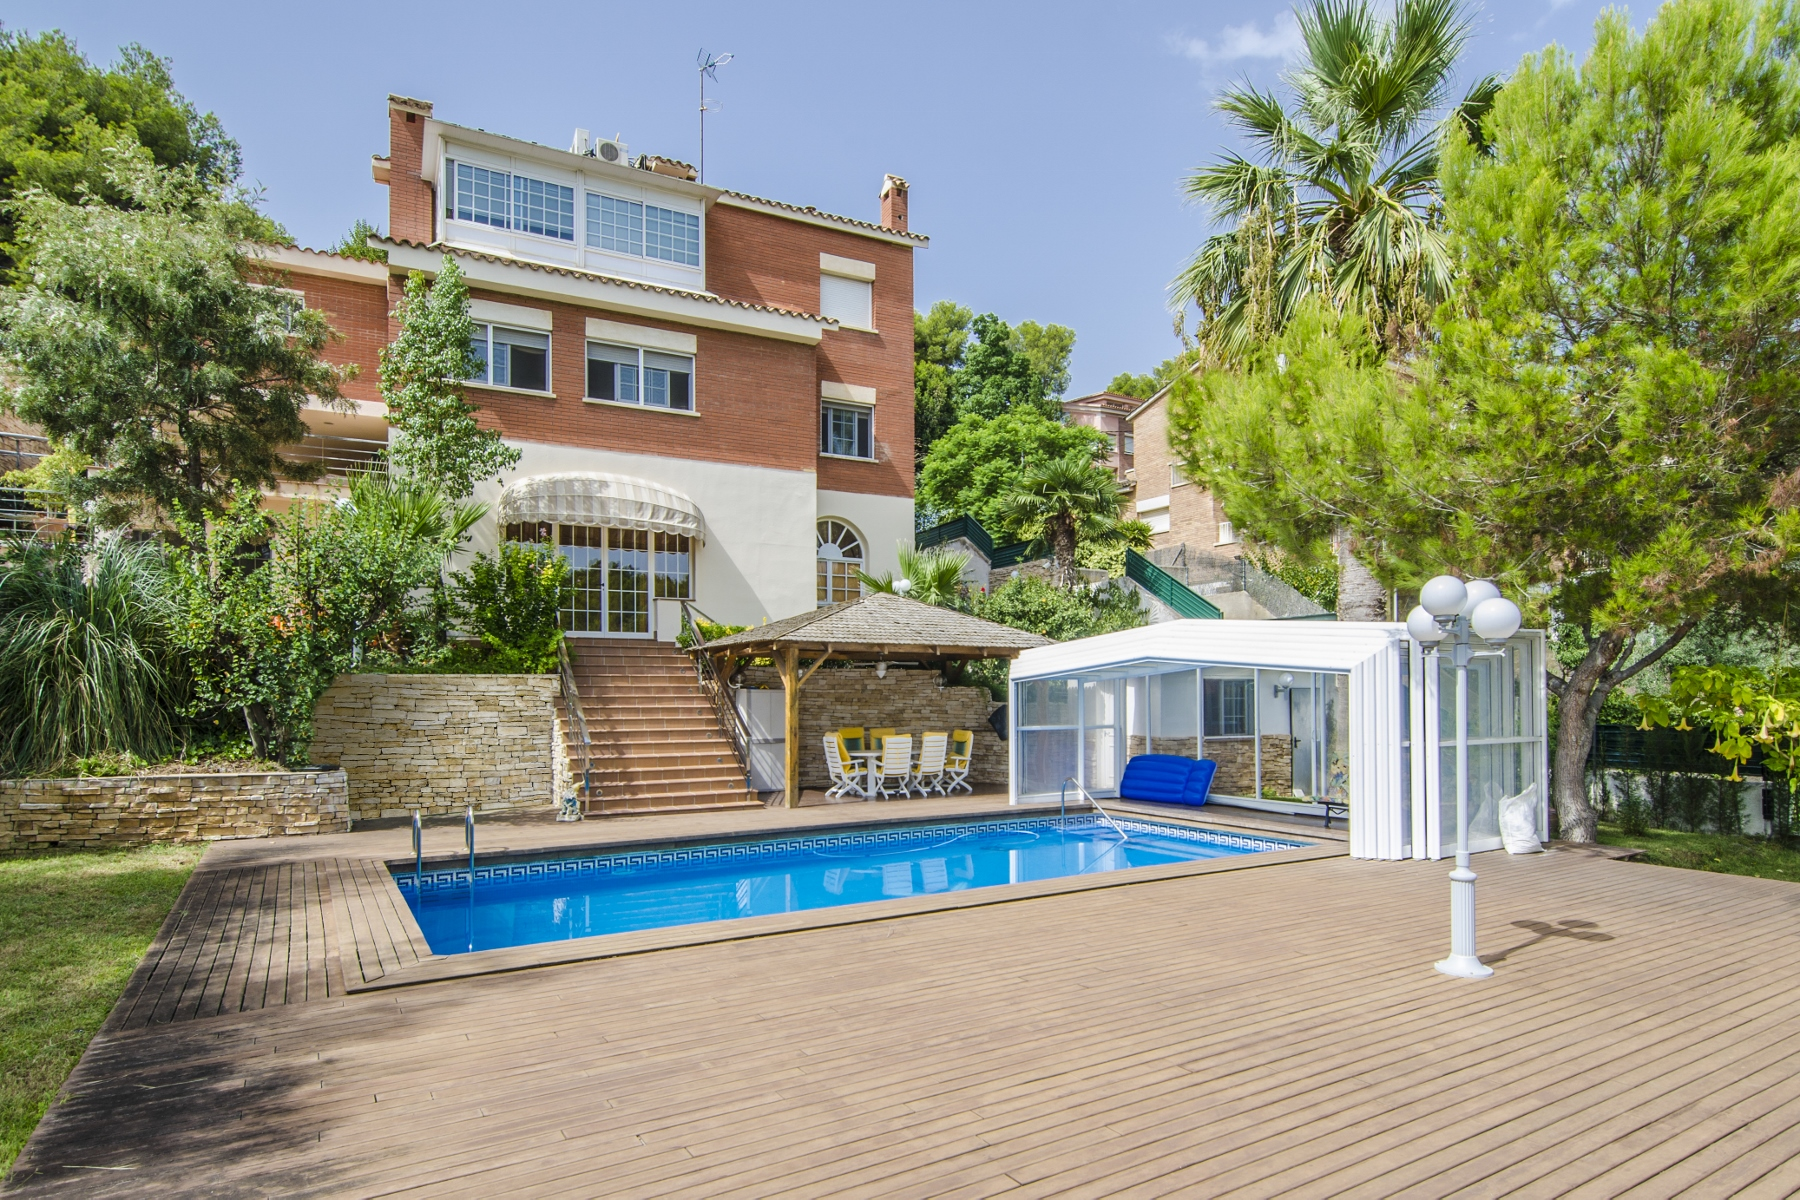 Single Family Home for Sale at Functional Chalet for Sale in Castelldefelds Castelldefels, Barcelona, 08866 Spain